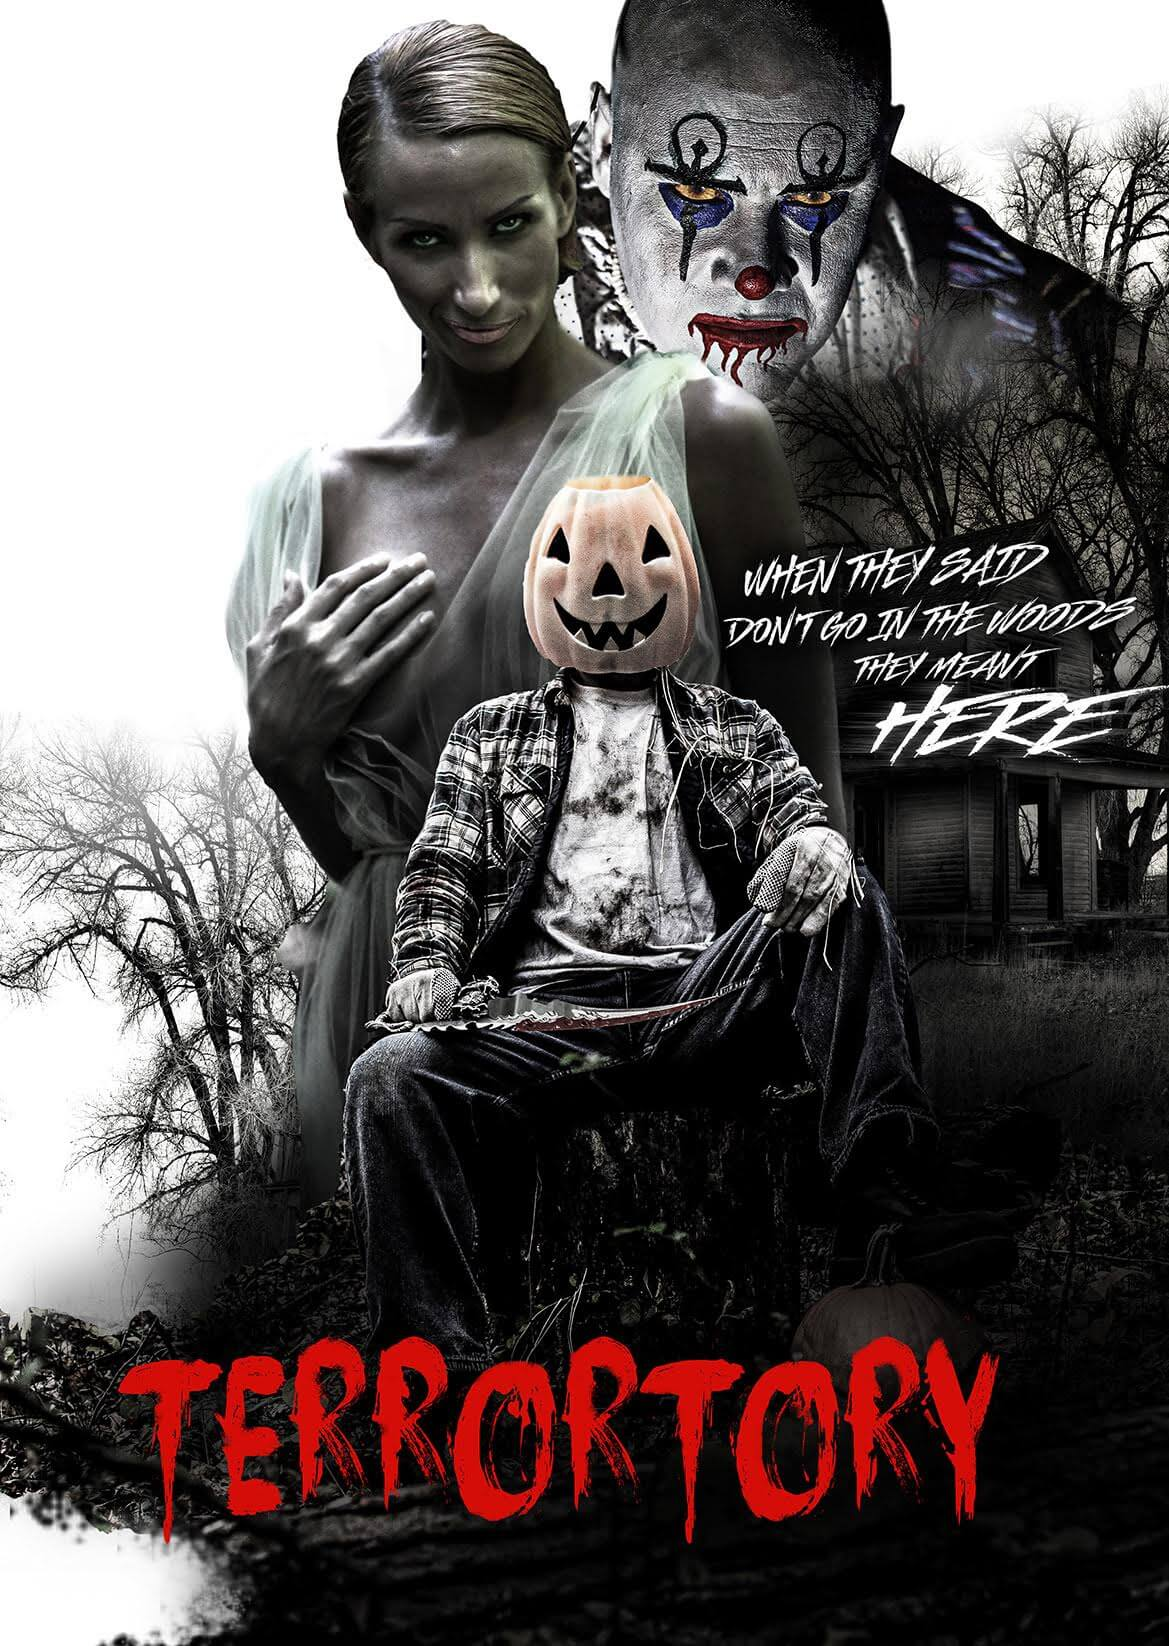 Terrortory psoter 1 - Venture into Unknown Terrortory with this Exclusive Poster Reveal